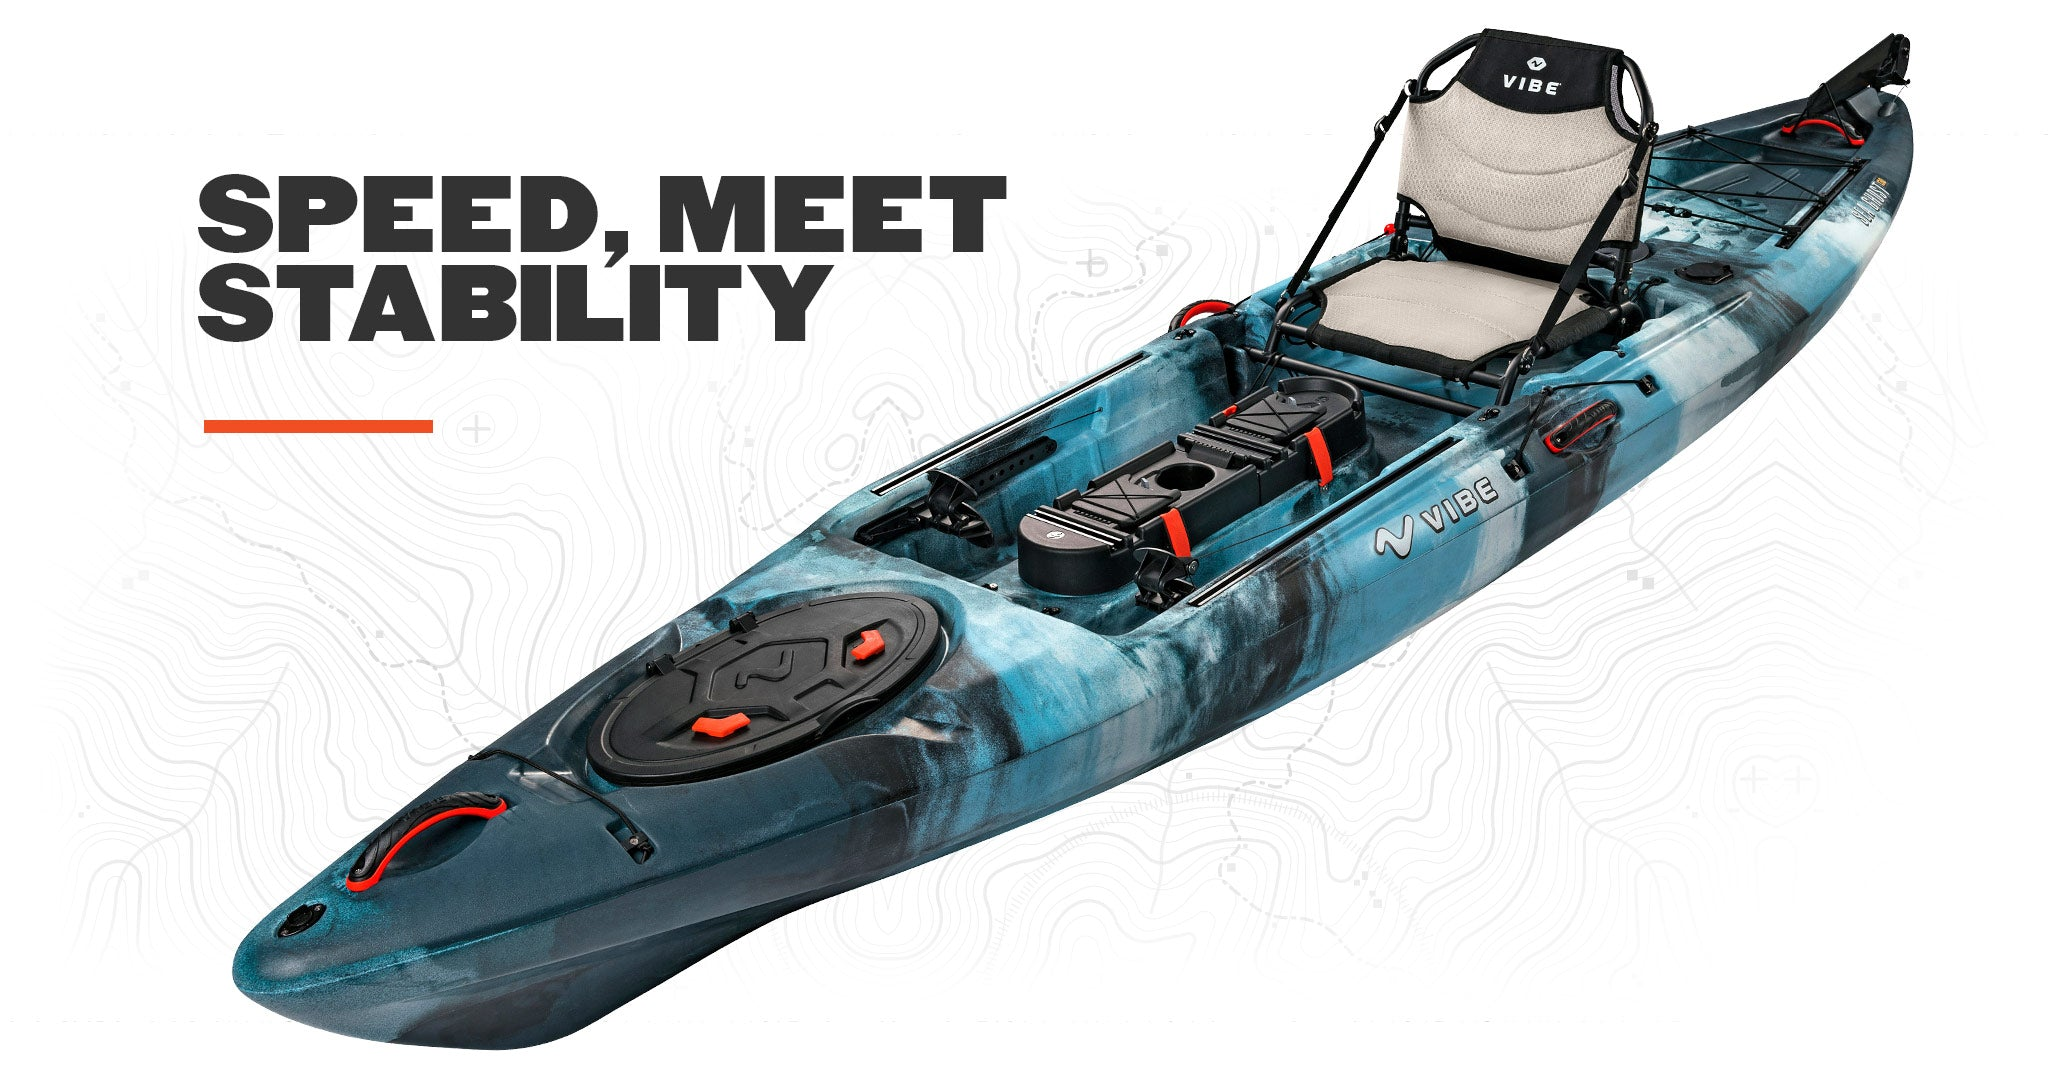 Vibe Sea Ghost 130 Angler Kayak